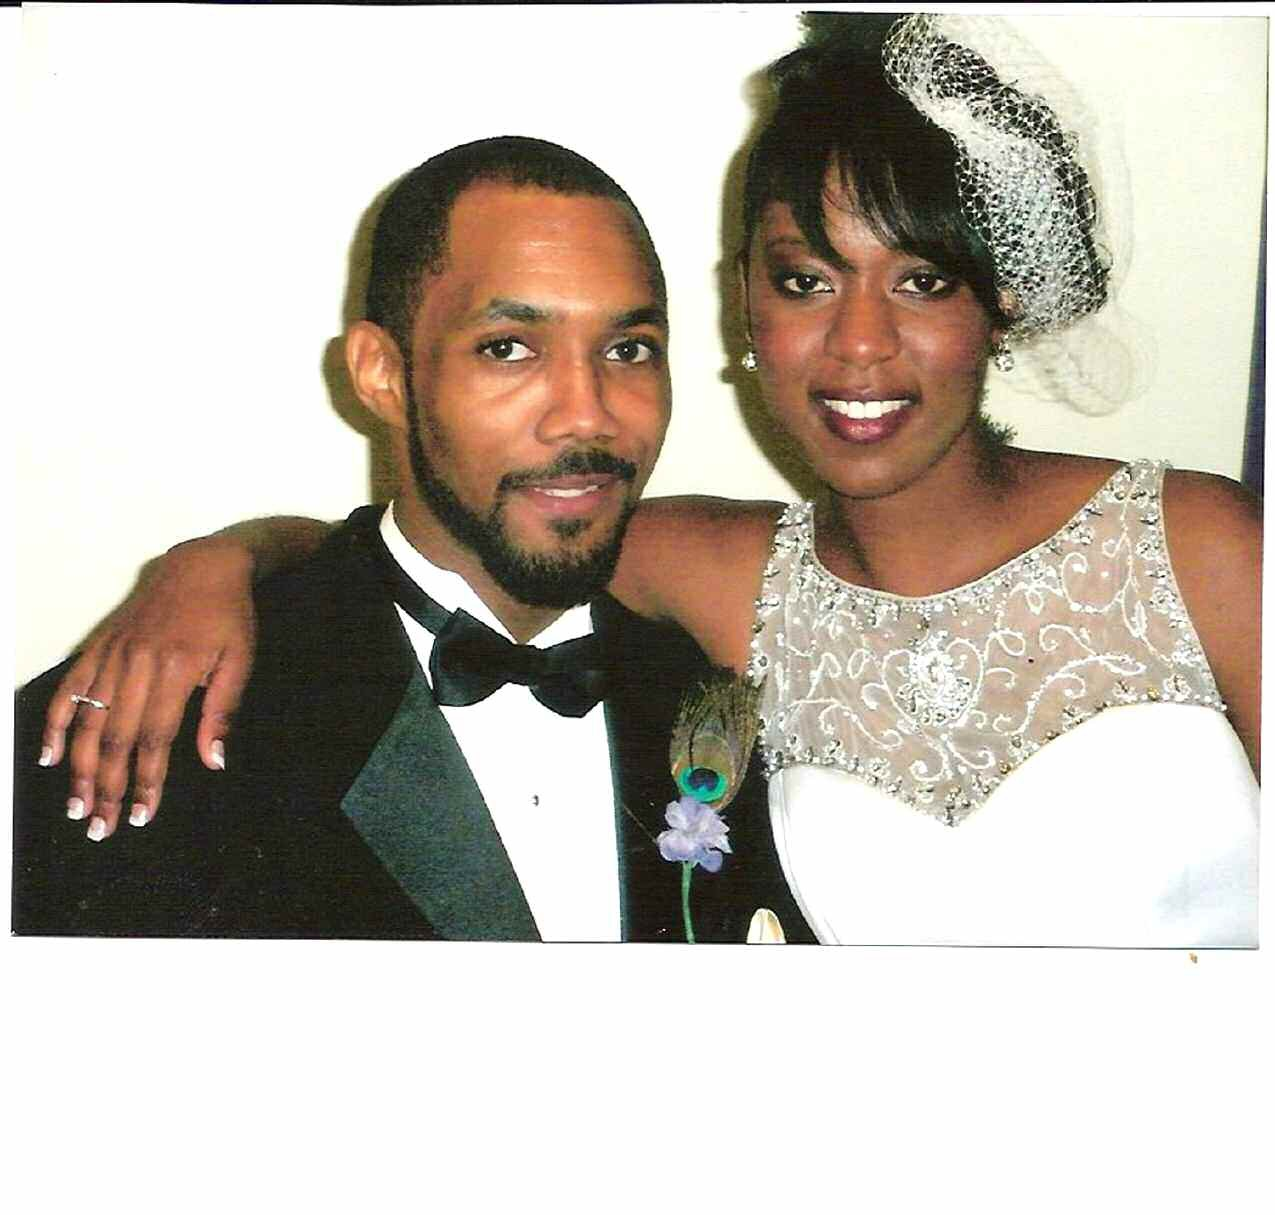 Mr. and Mrs. Ronald Slaughter, Jr.